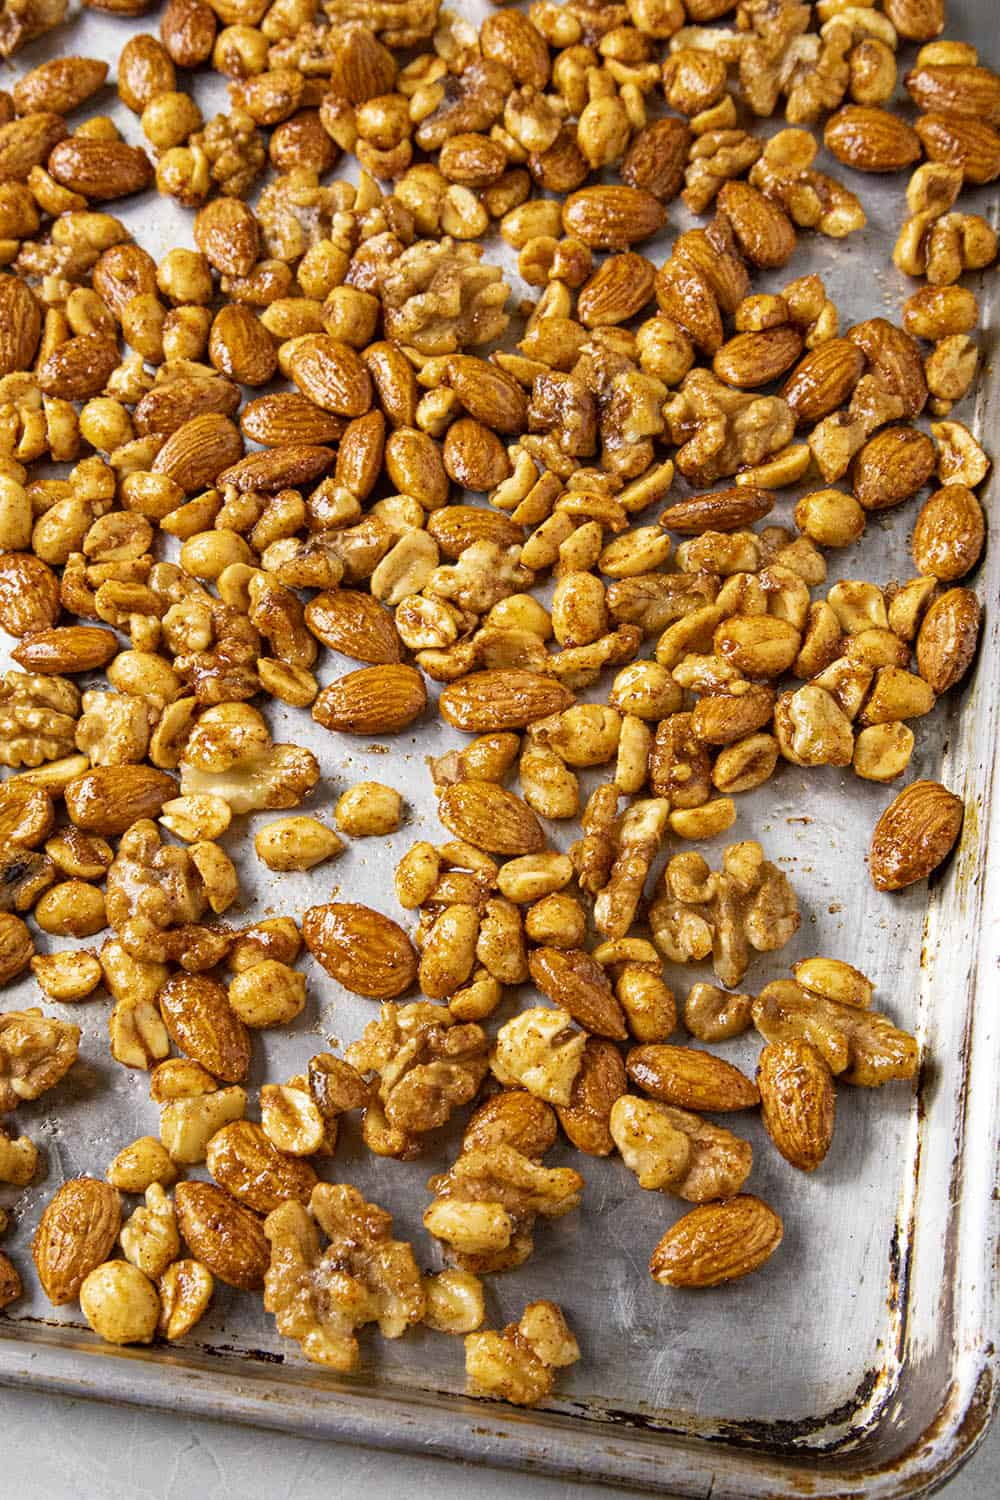 Spiced Nuts ready to go into the oven